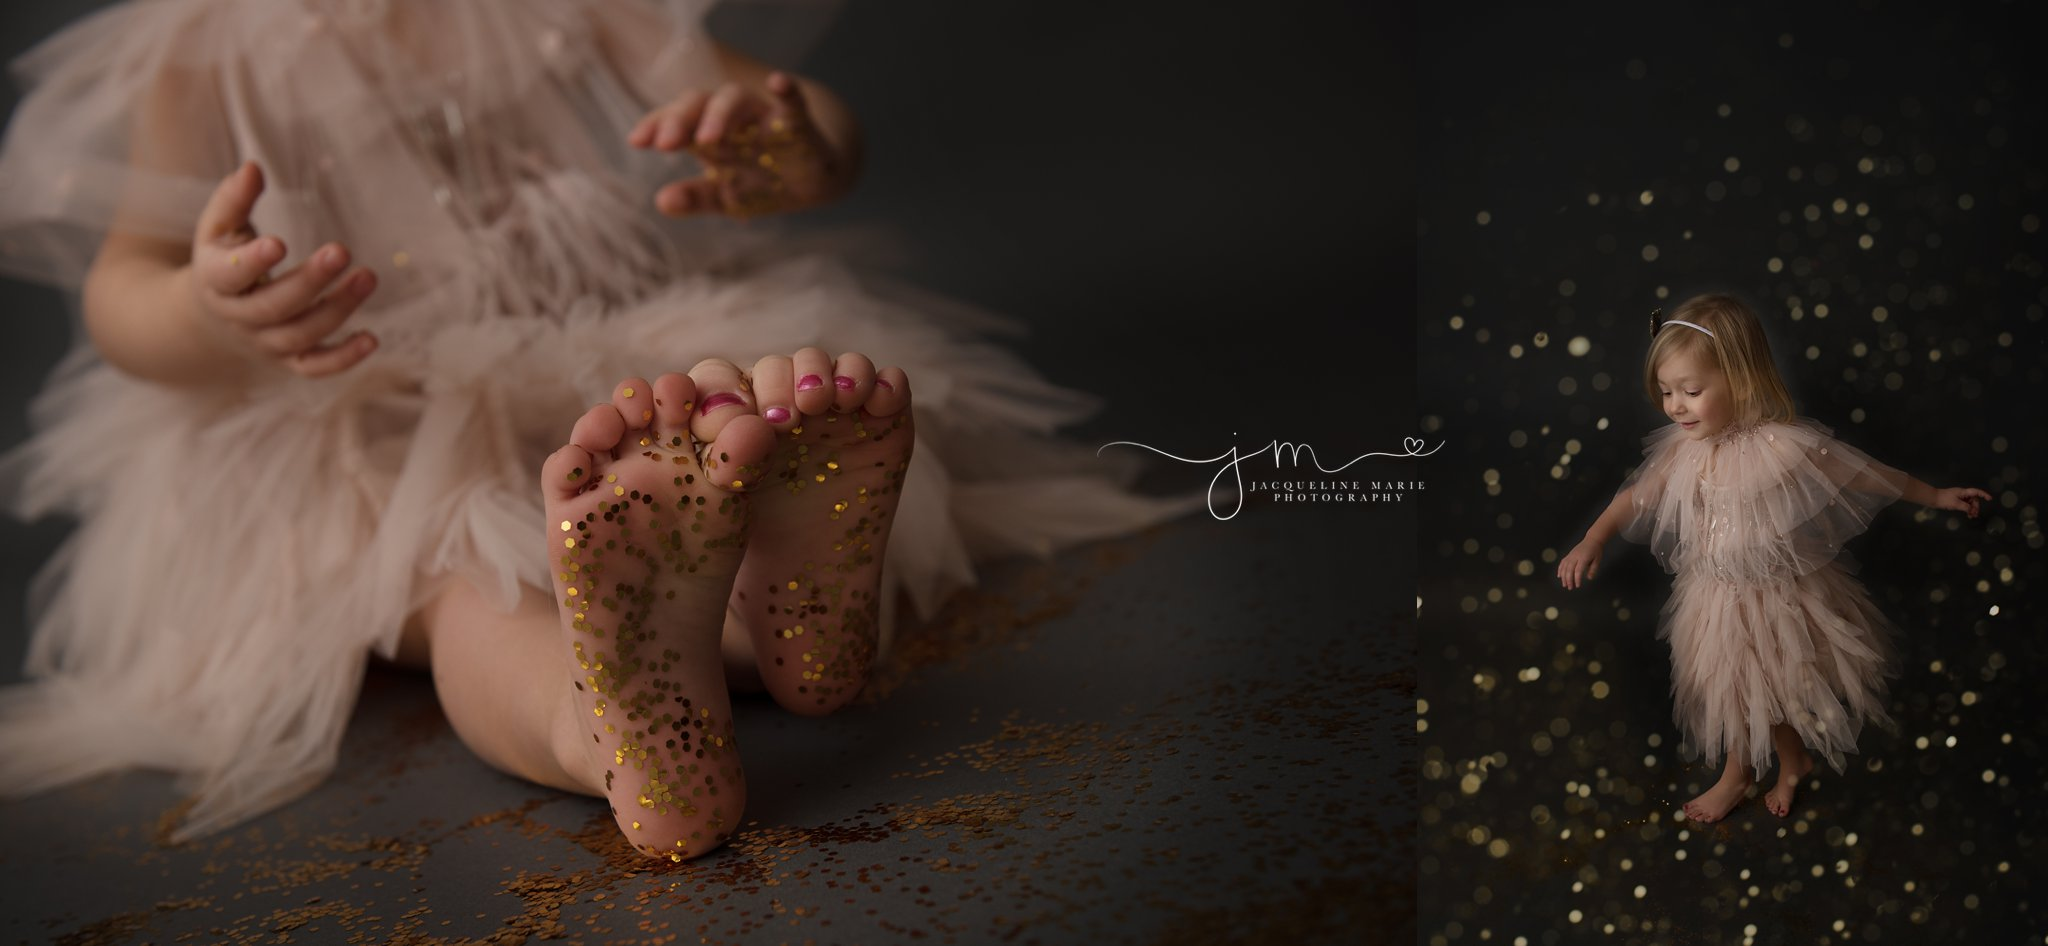 columbus ohio children photographer features image of glitter on toes for glitter session in tutu du mode dress